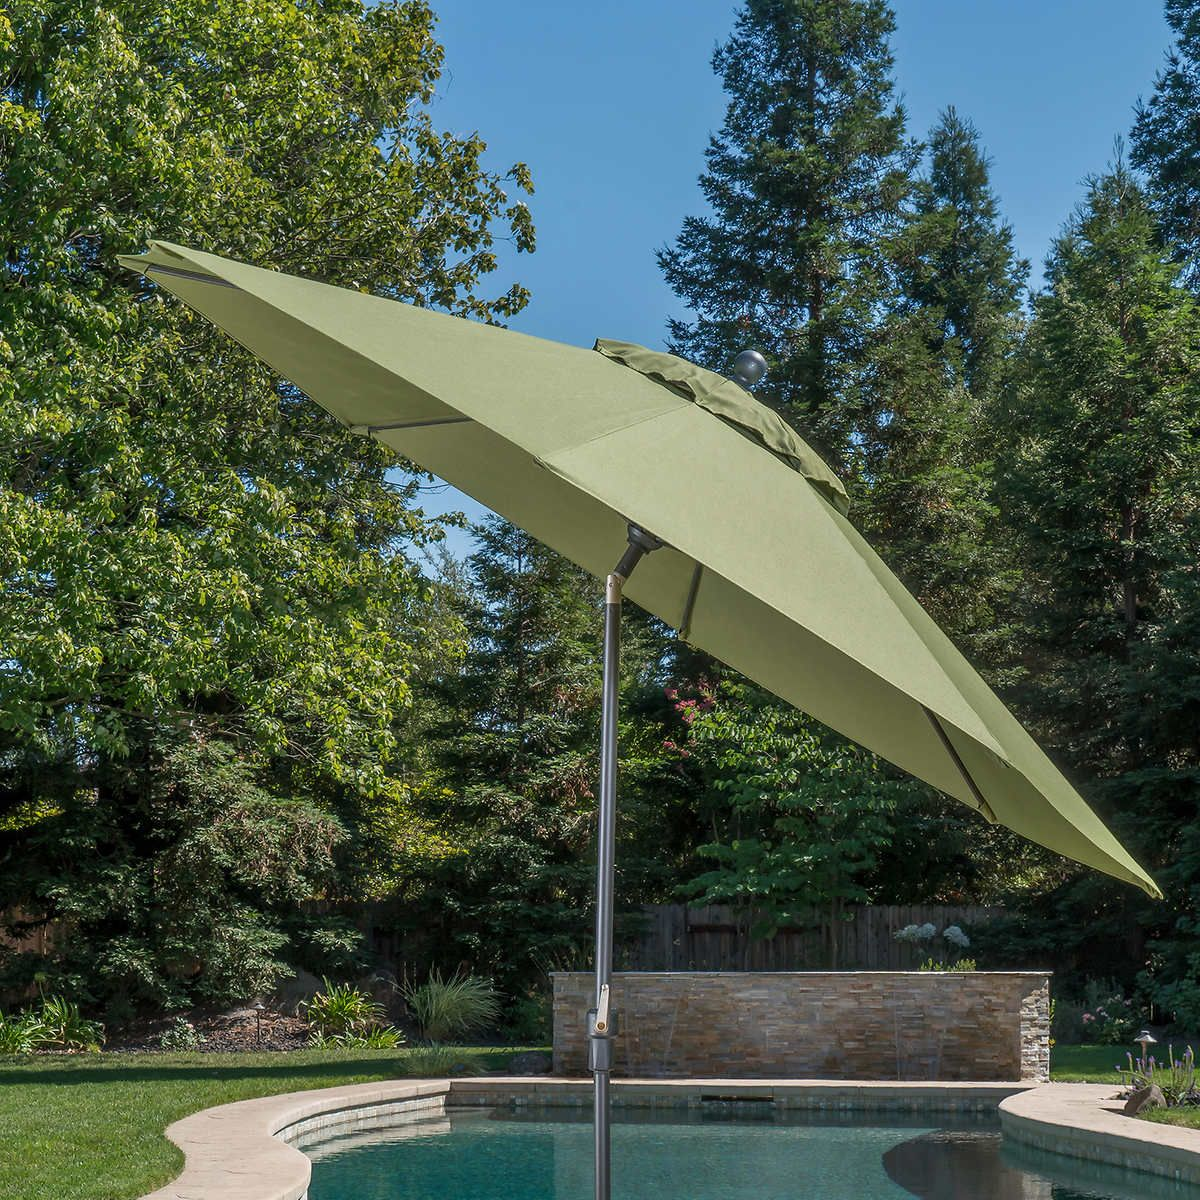 aa0e8164d7409 Costco $139 Green ProShade 10' Auto Tilt Aluminum Umbrella 4.7 out of 5  stars. Read reviews. 4.7 (16) Your Price139.99$ Shipping ...